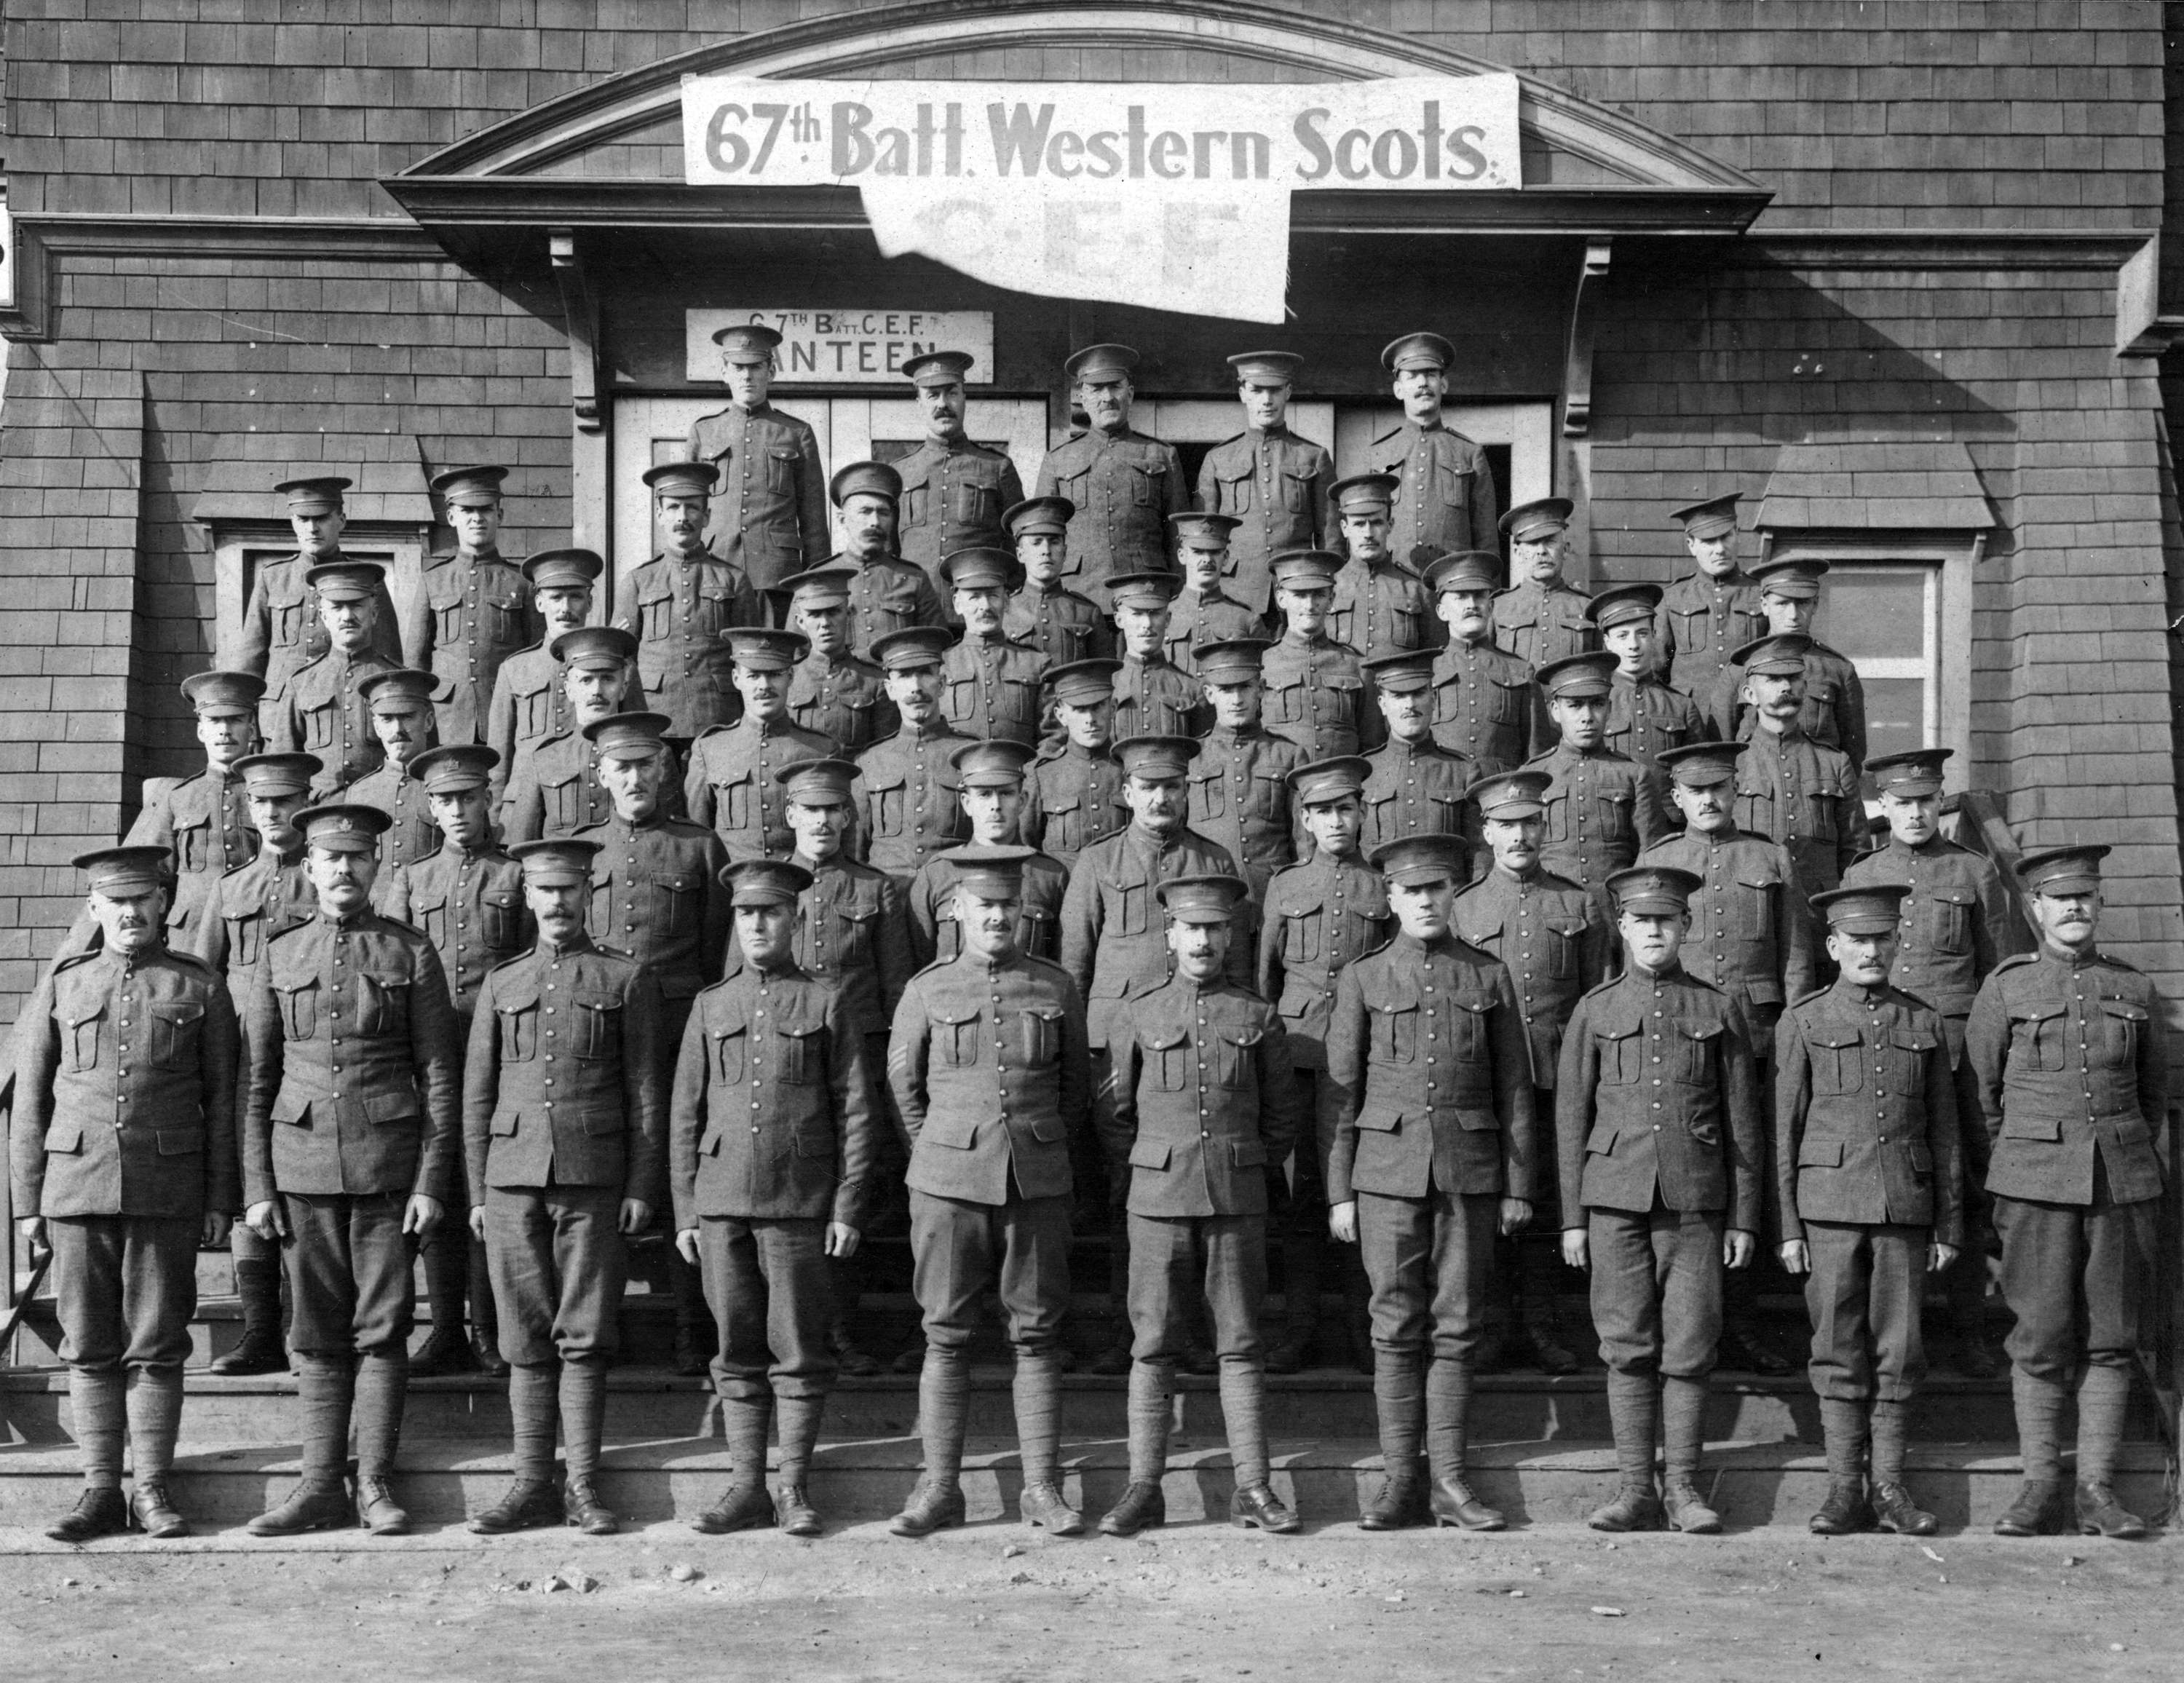 The 67th Battalion, Western Scots